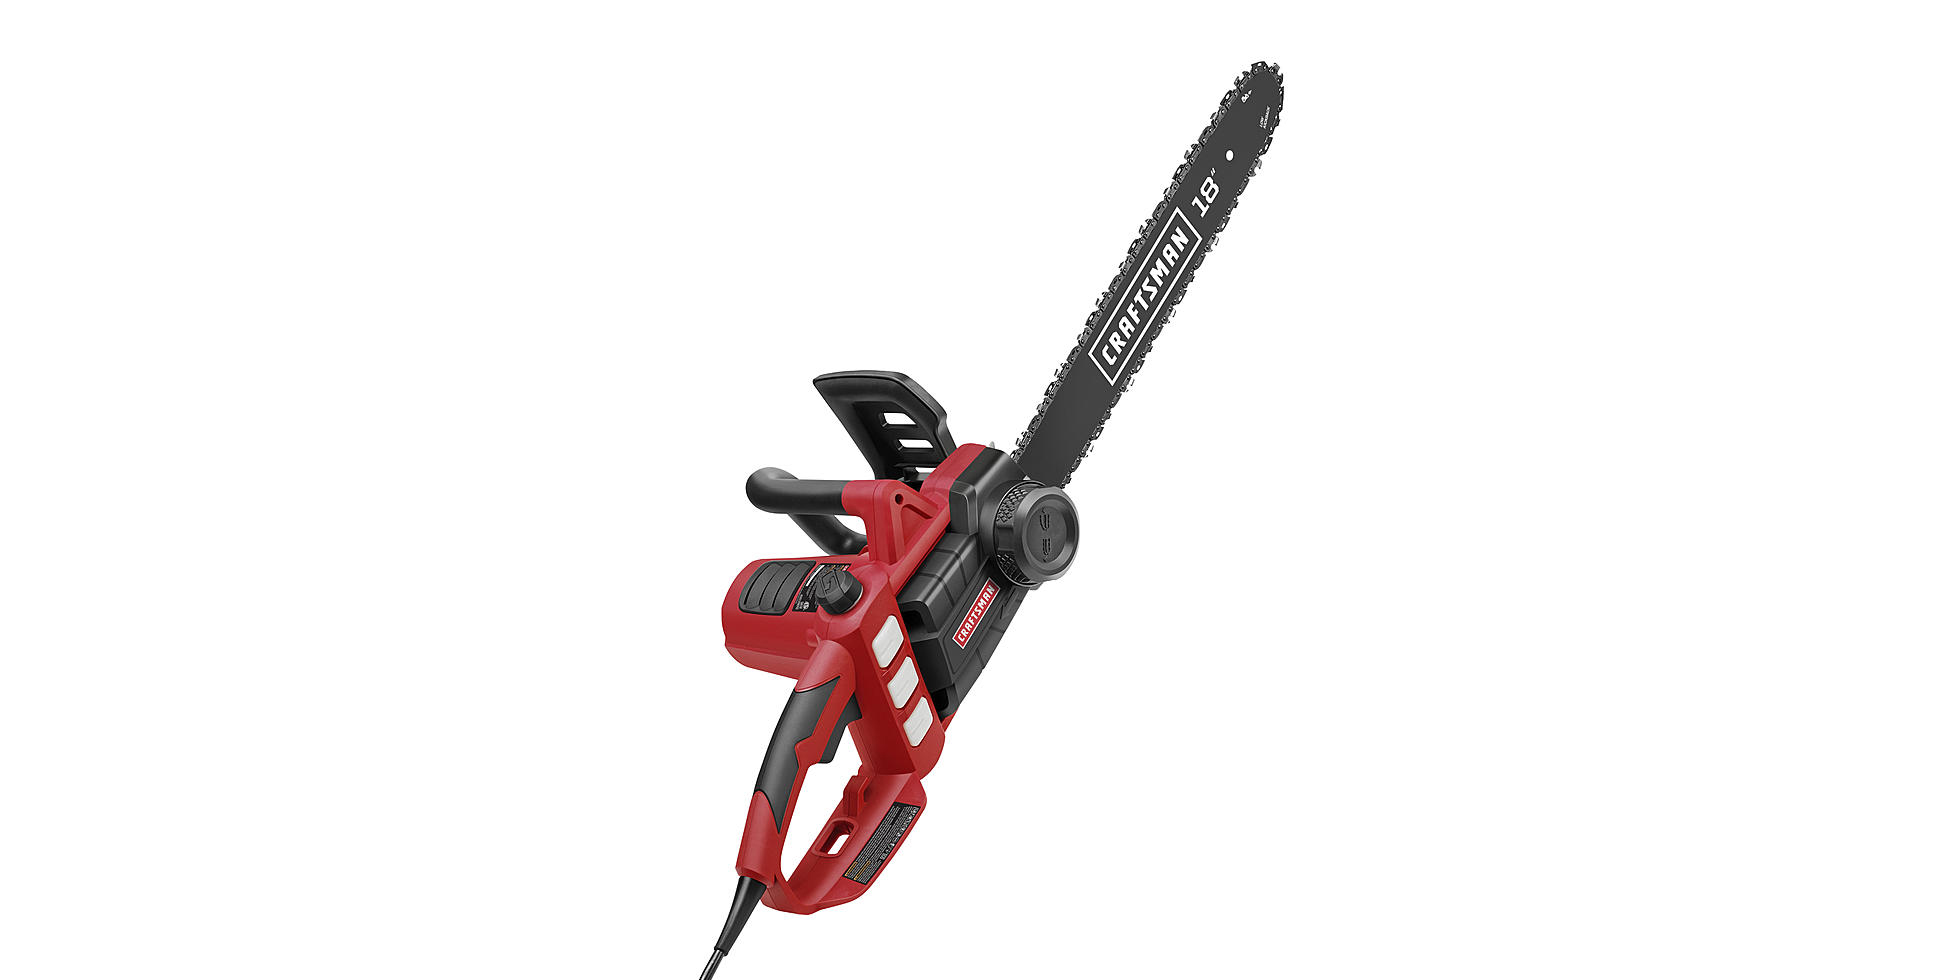 Green Deals: Craftsman 18-inch Electric Chainsaw $100